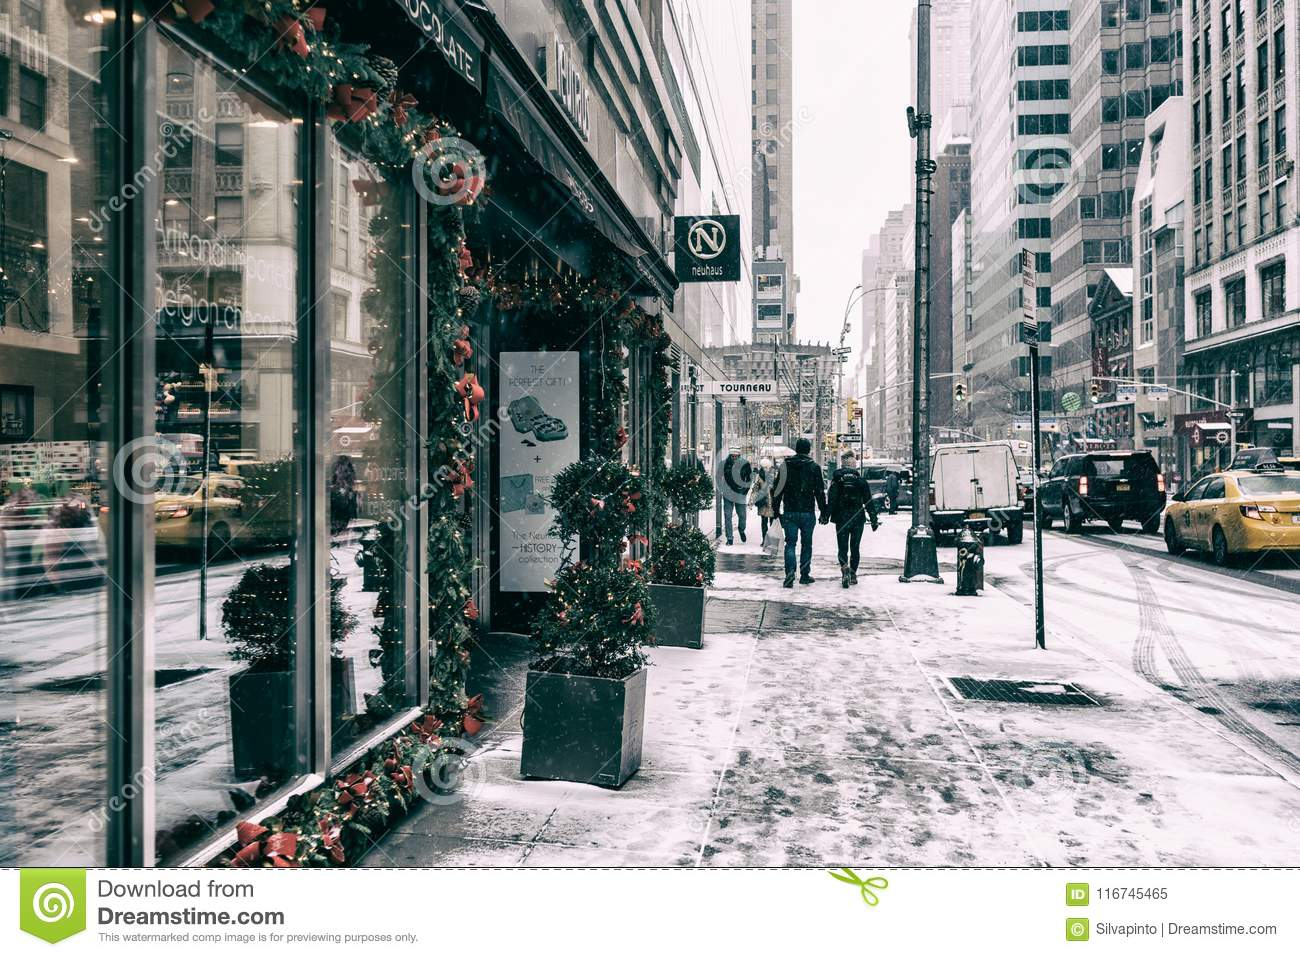 31 DEZ 2017 - NEW YORK/USA - People walking on the streets of New York to snow.